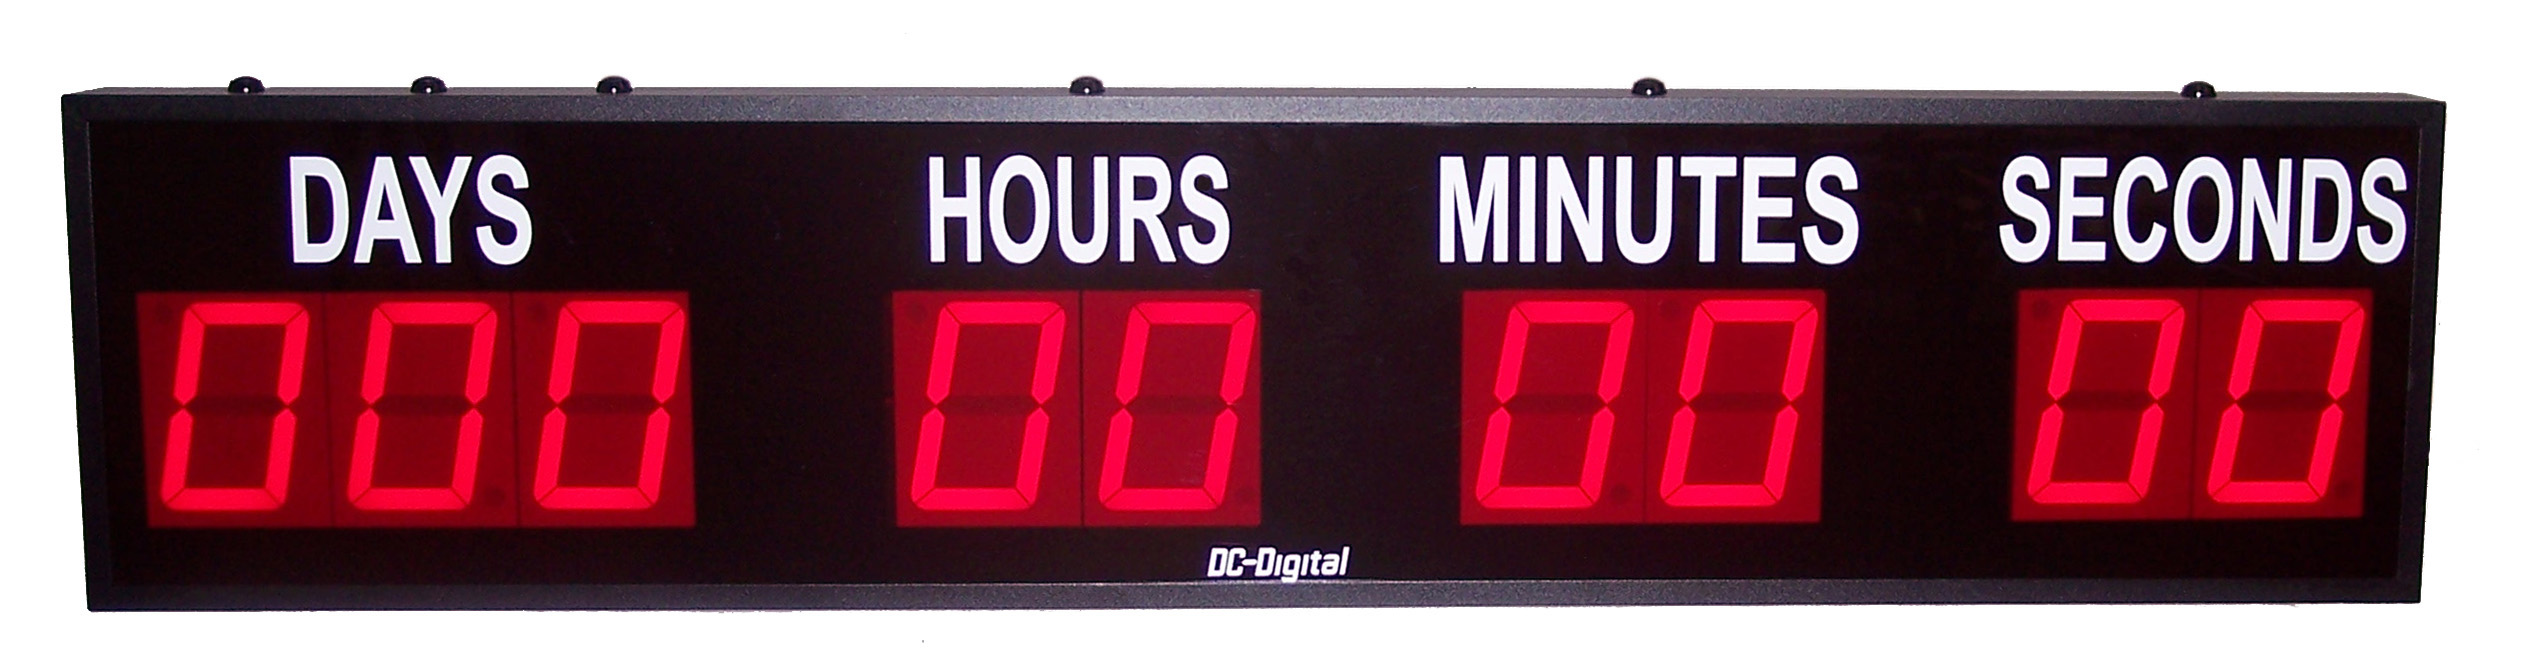 countdown the days hours minutes and seconds to a special event 4 inch digits